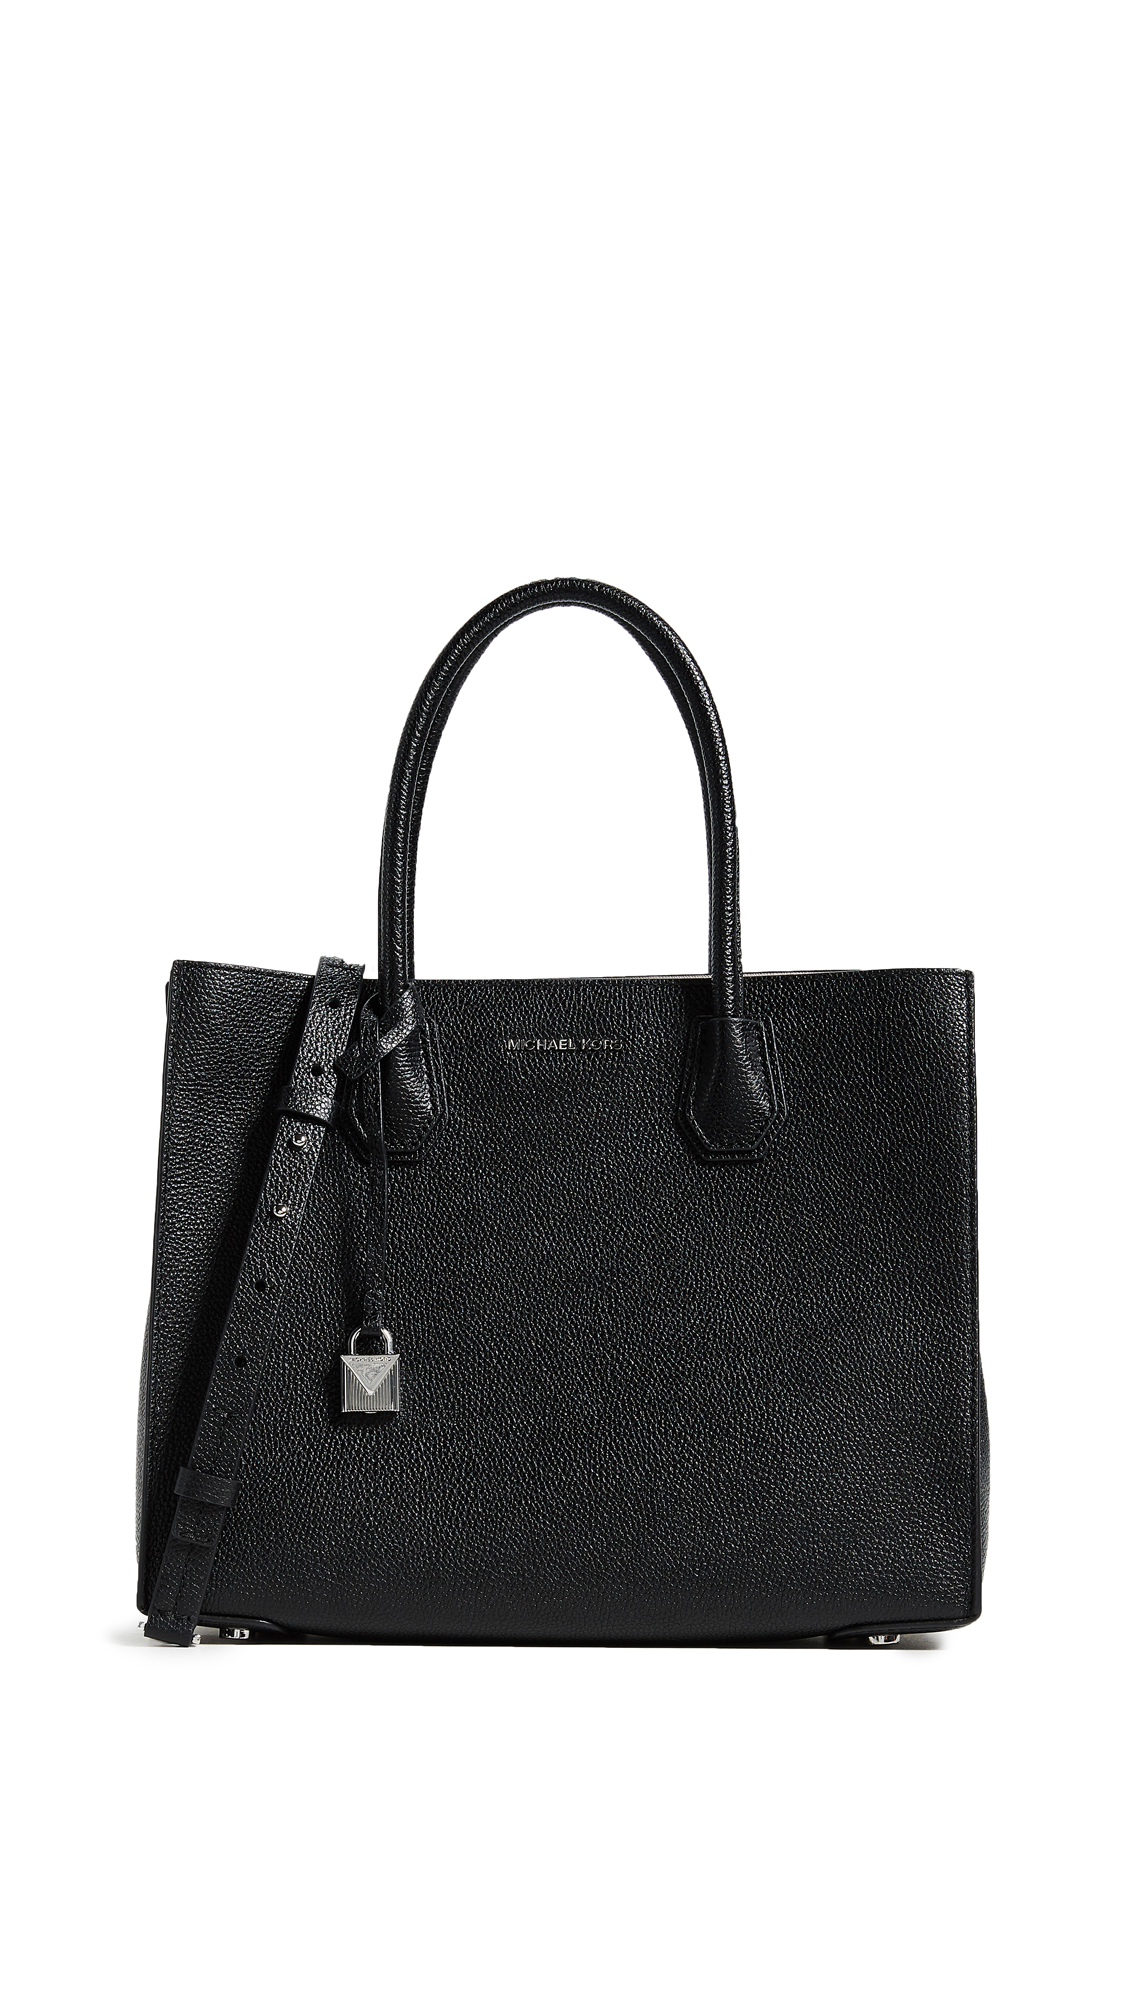 Mercer Large Convertible Tote Bag, Black